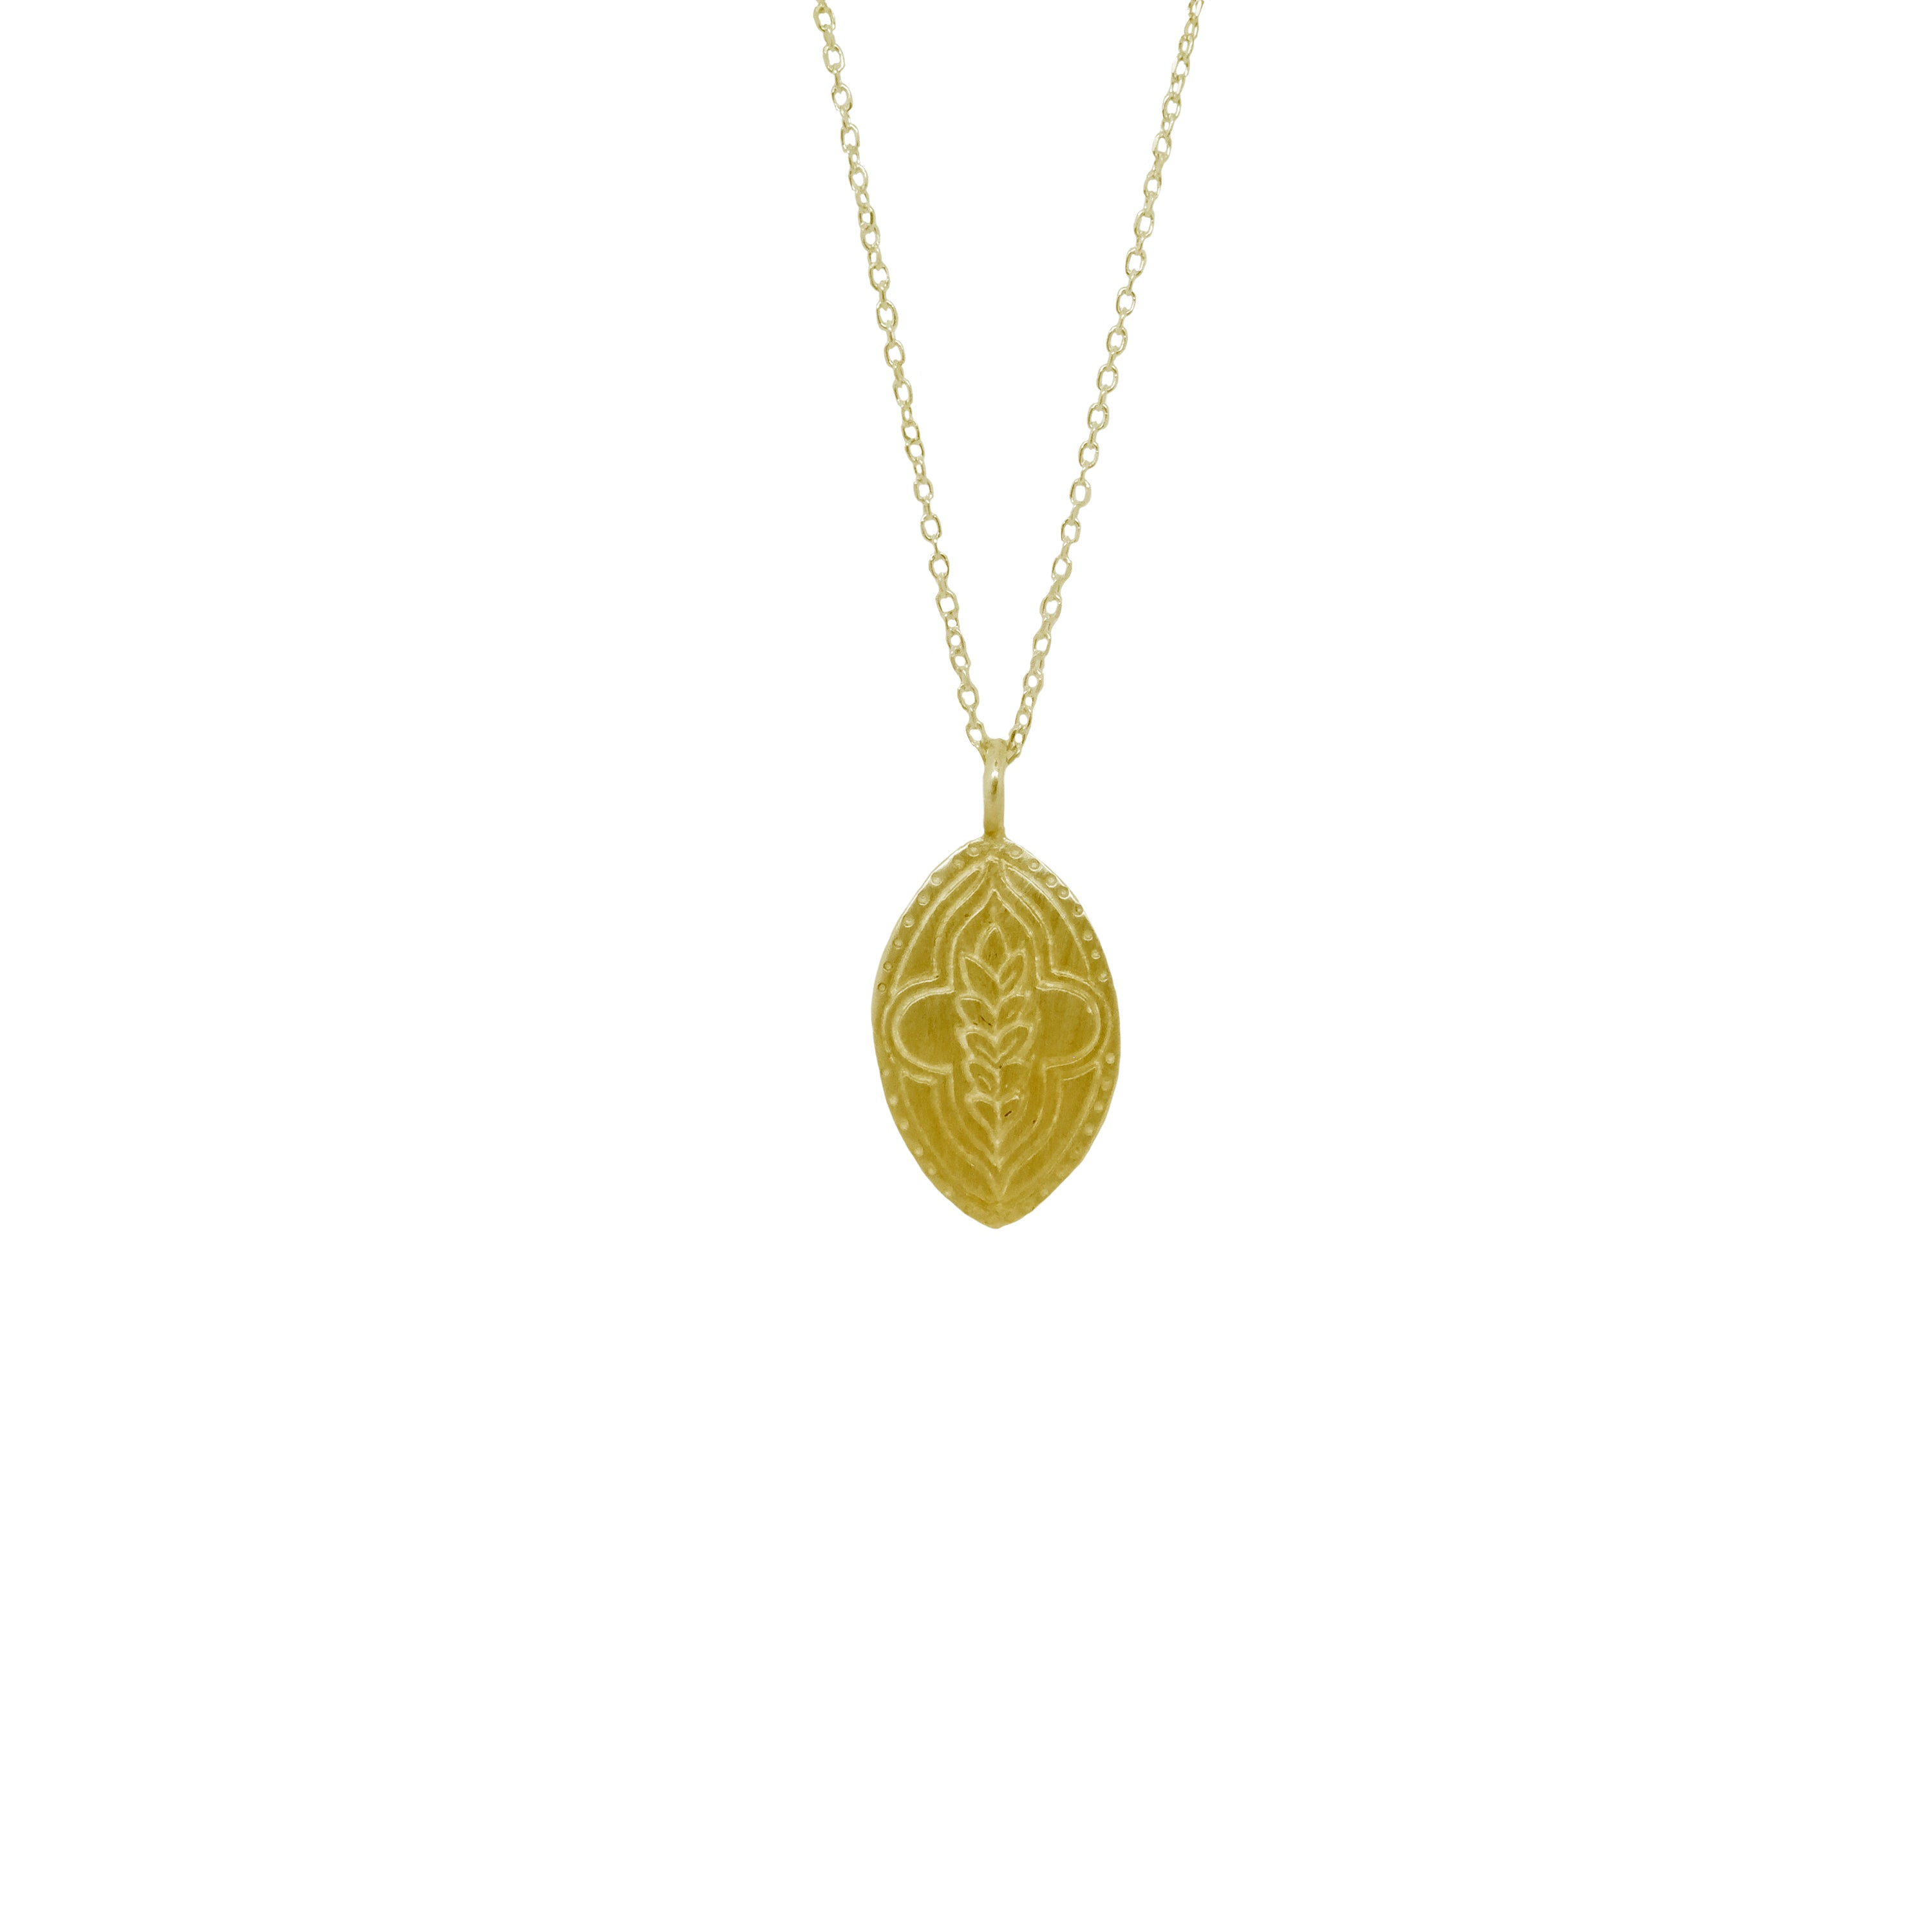 Hunt Of Hounds Abundance Necklace in gold. Wheat sheaf coin pendant necklace. Unisex.